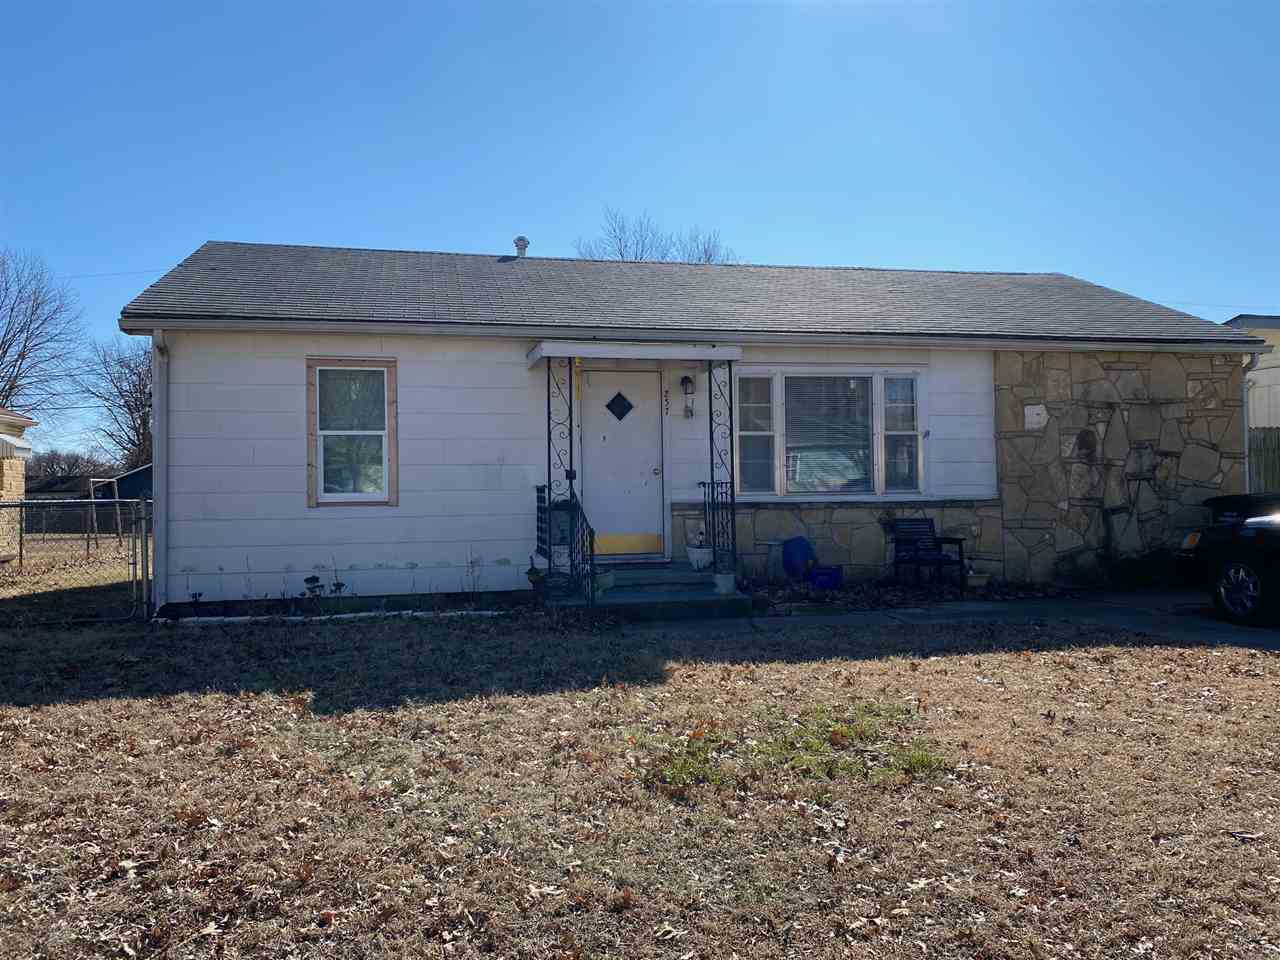 This 2 bedroom (possibly 3rd bedroom) is in an excellent location with a large fenced in backyard! Very clean and nice on the inside!  Close to all of the schools this would make an excellent home for anyone looking on a moderate budget! This would also make a perfect rental property for anyone looking to invest! Call listing agent today to schedule a showing!